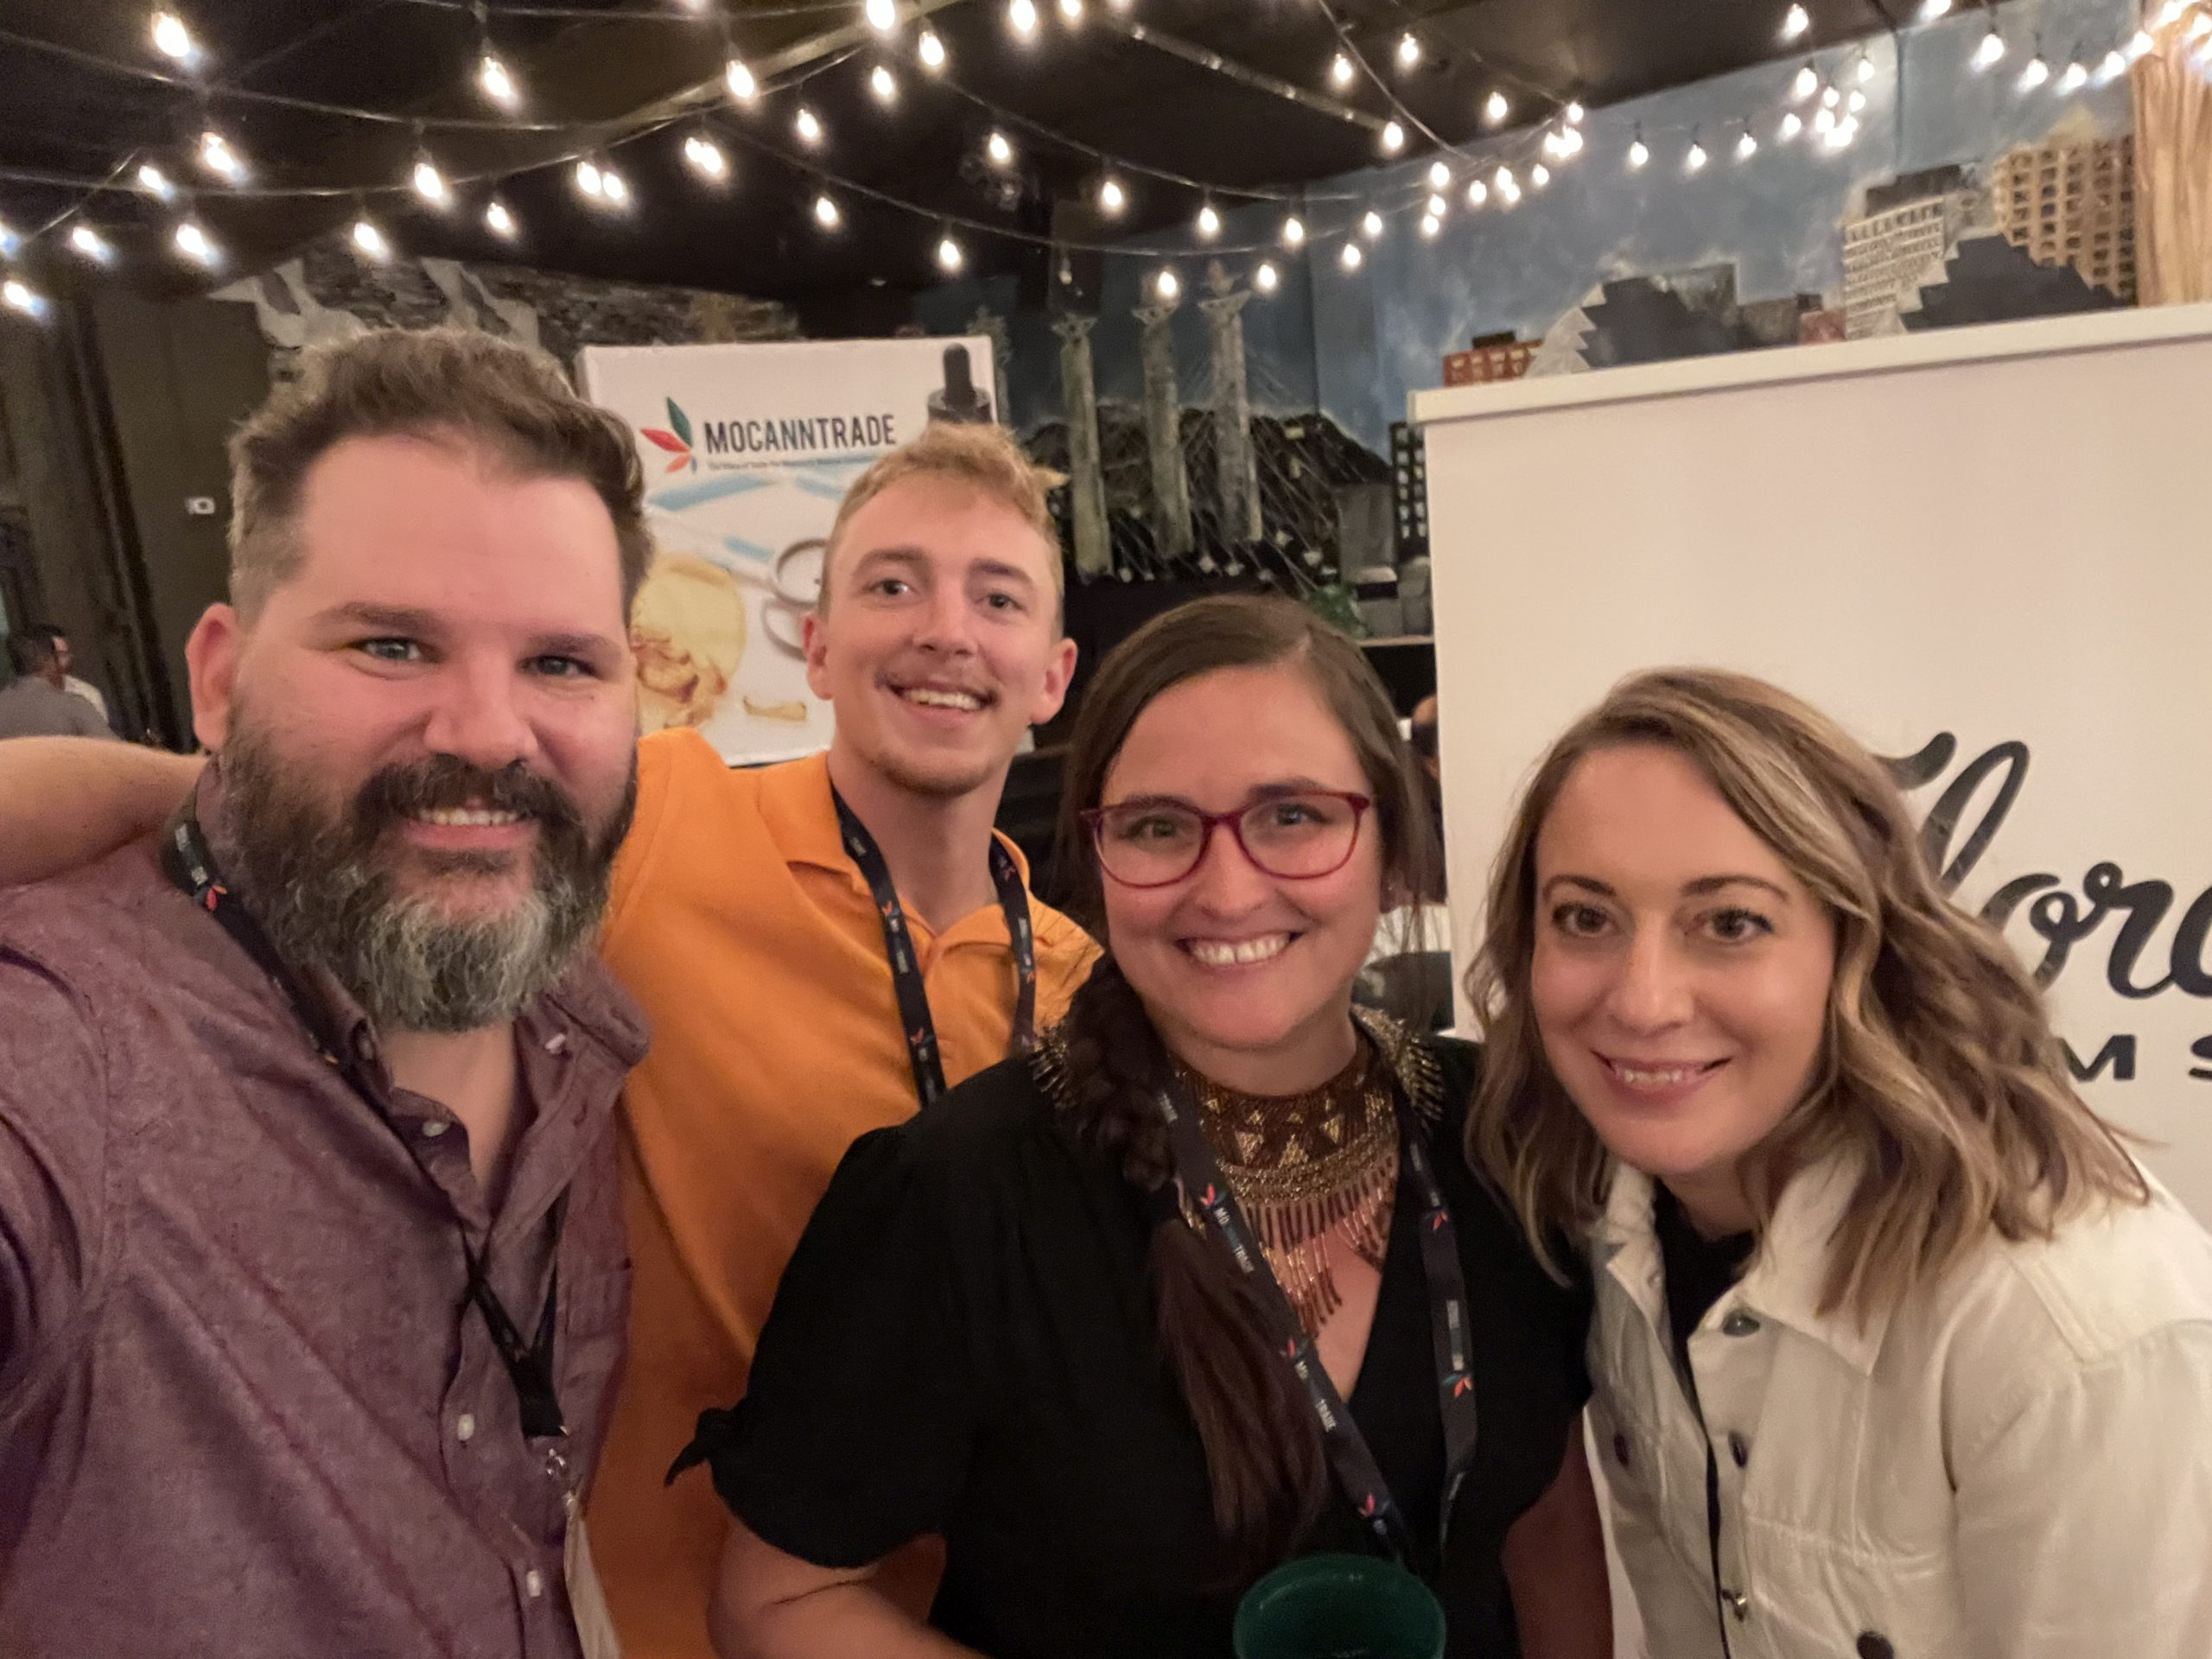 Matthan Black (Operations Director of Flora Farms), Boston Stallings (Blue Sage Cannabis), Karla Deel (Marketing Director - Flora Farms), Mary Kate Black (Staffing & Retail Consultant - Flora Farms) post together at the Flora Farms table